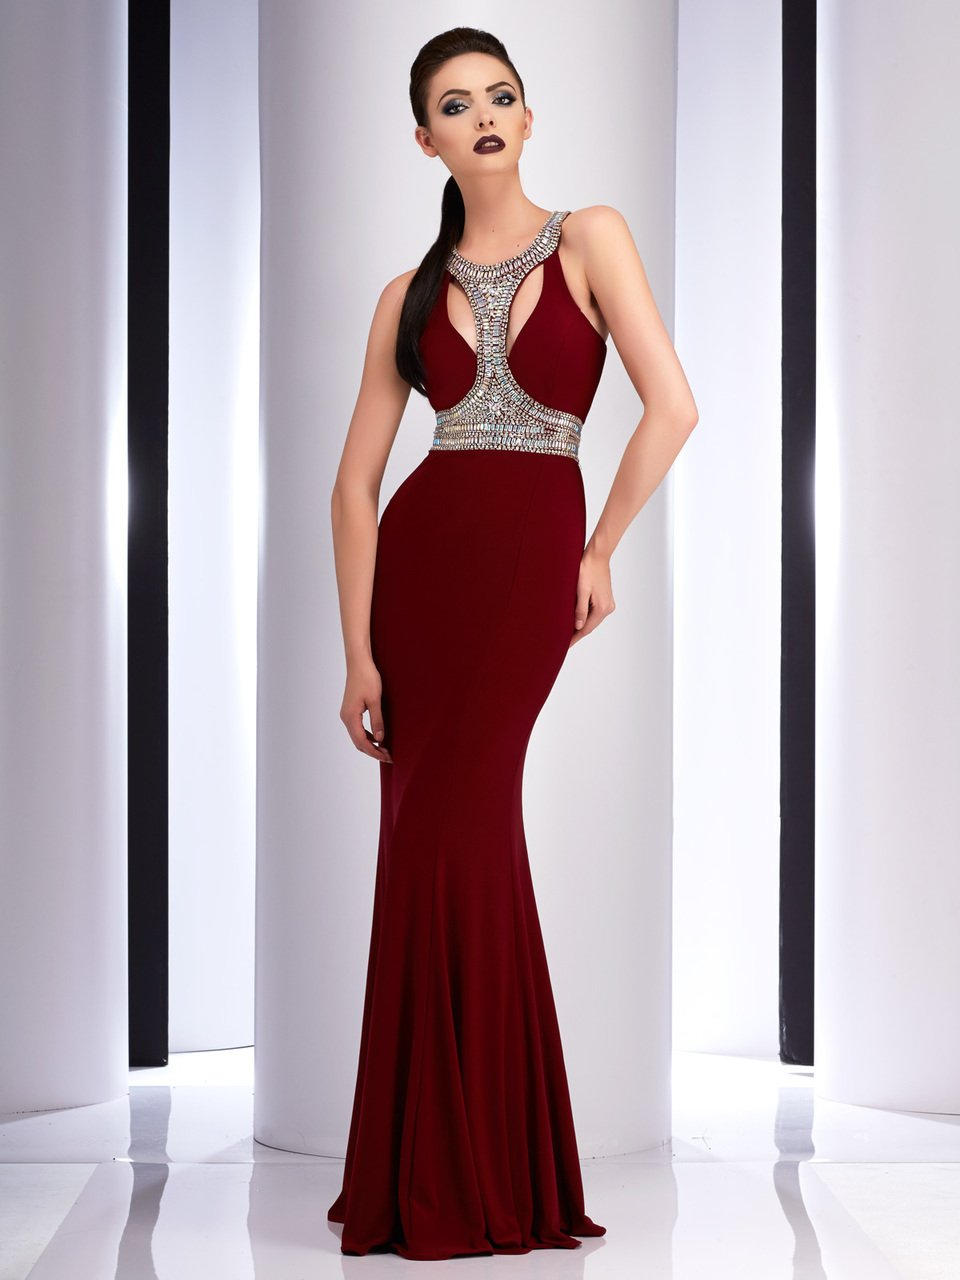 Clarisse - 2839 Bedazzled Halter Sheath Dress in Red